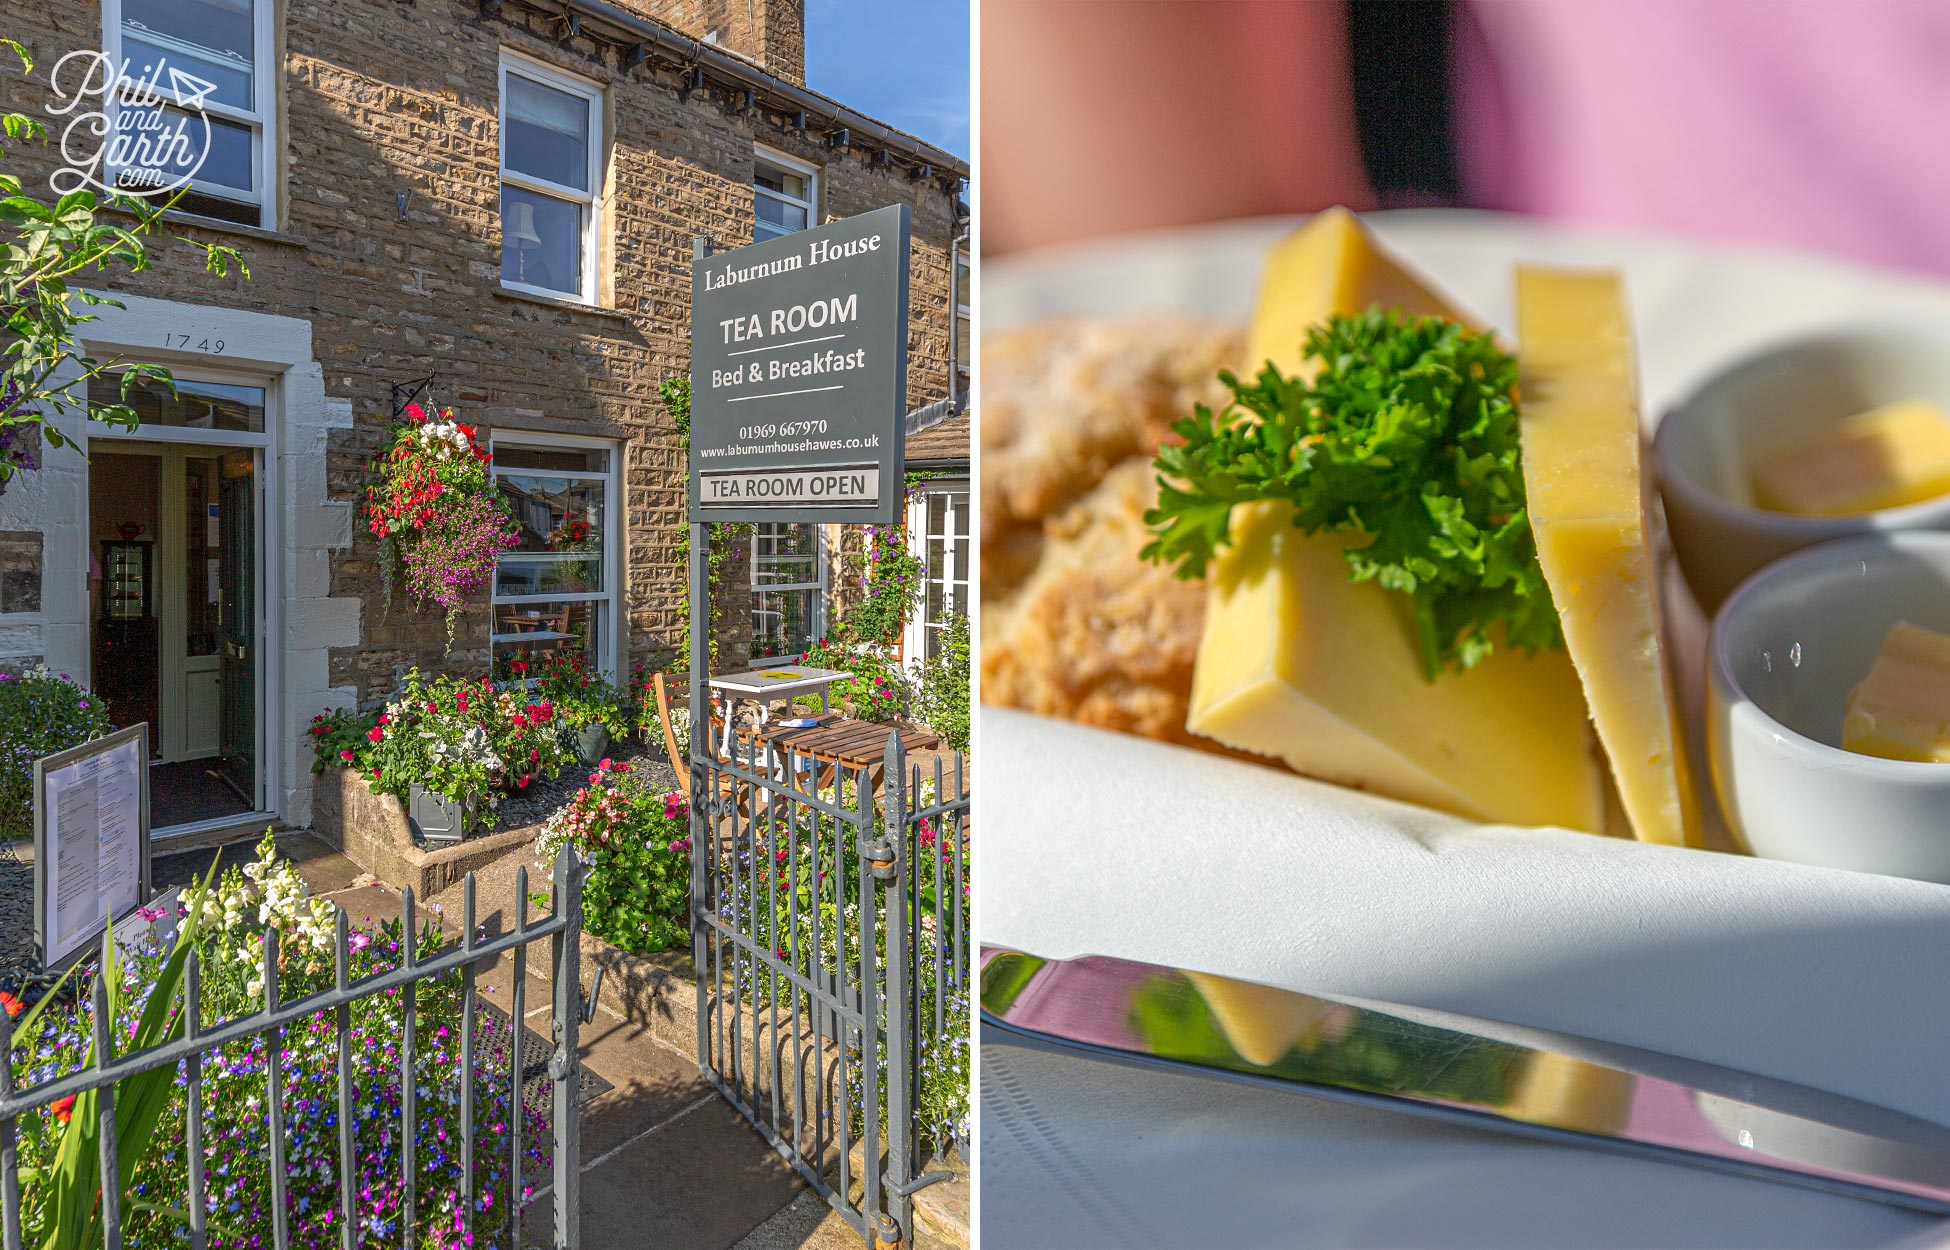 Cream teas are served with an option for Wensleydale cheese instead of jam at Laburnum House Tea Room